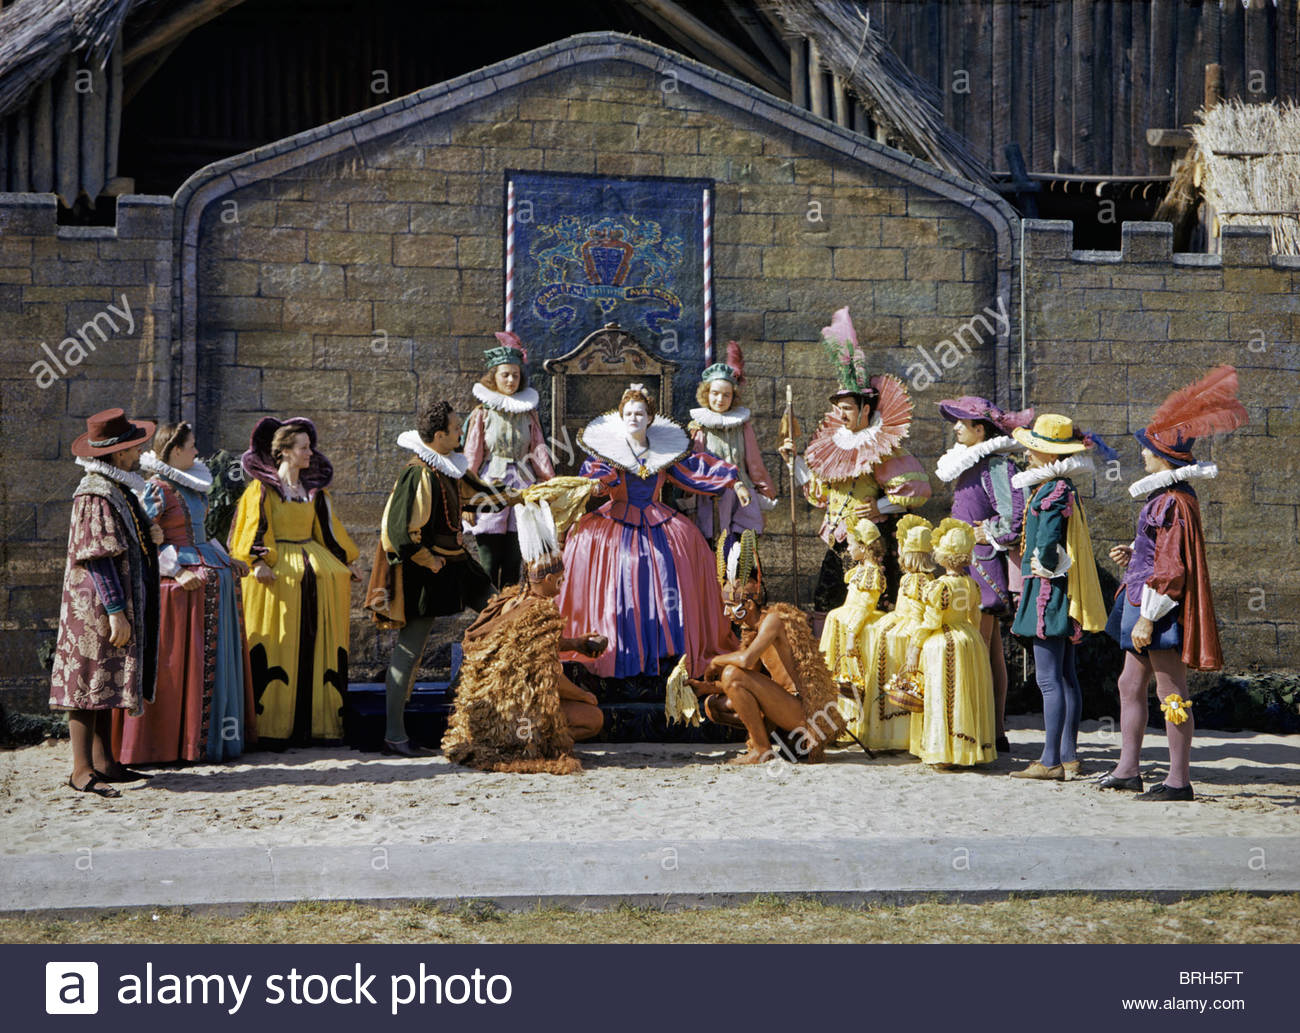 Inhabitants of Roanoke Island stage an annual play, The Lost Colony. - Stock Image